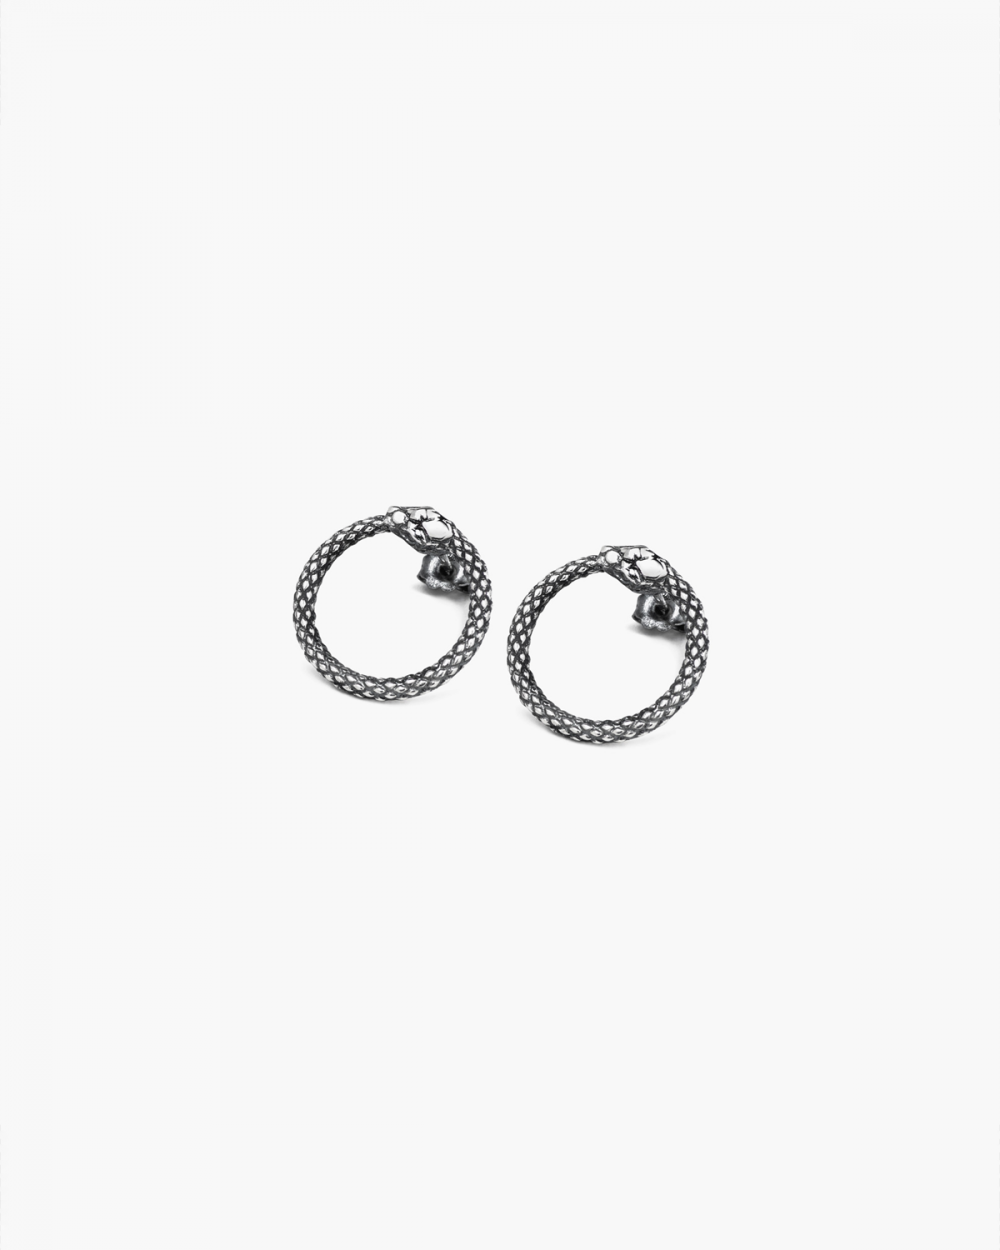 Earrings SILVER OUROBOROS PAIR EARRINGS NOVE25